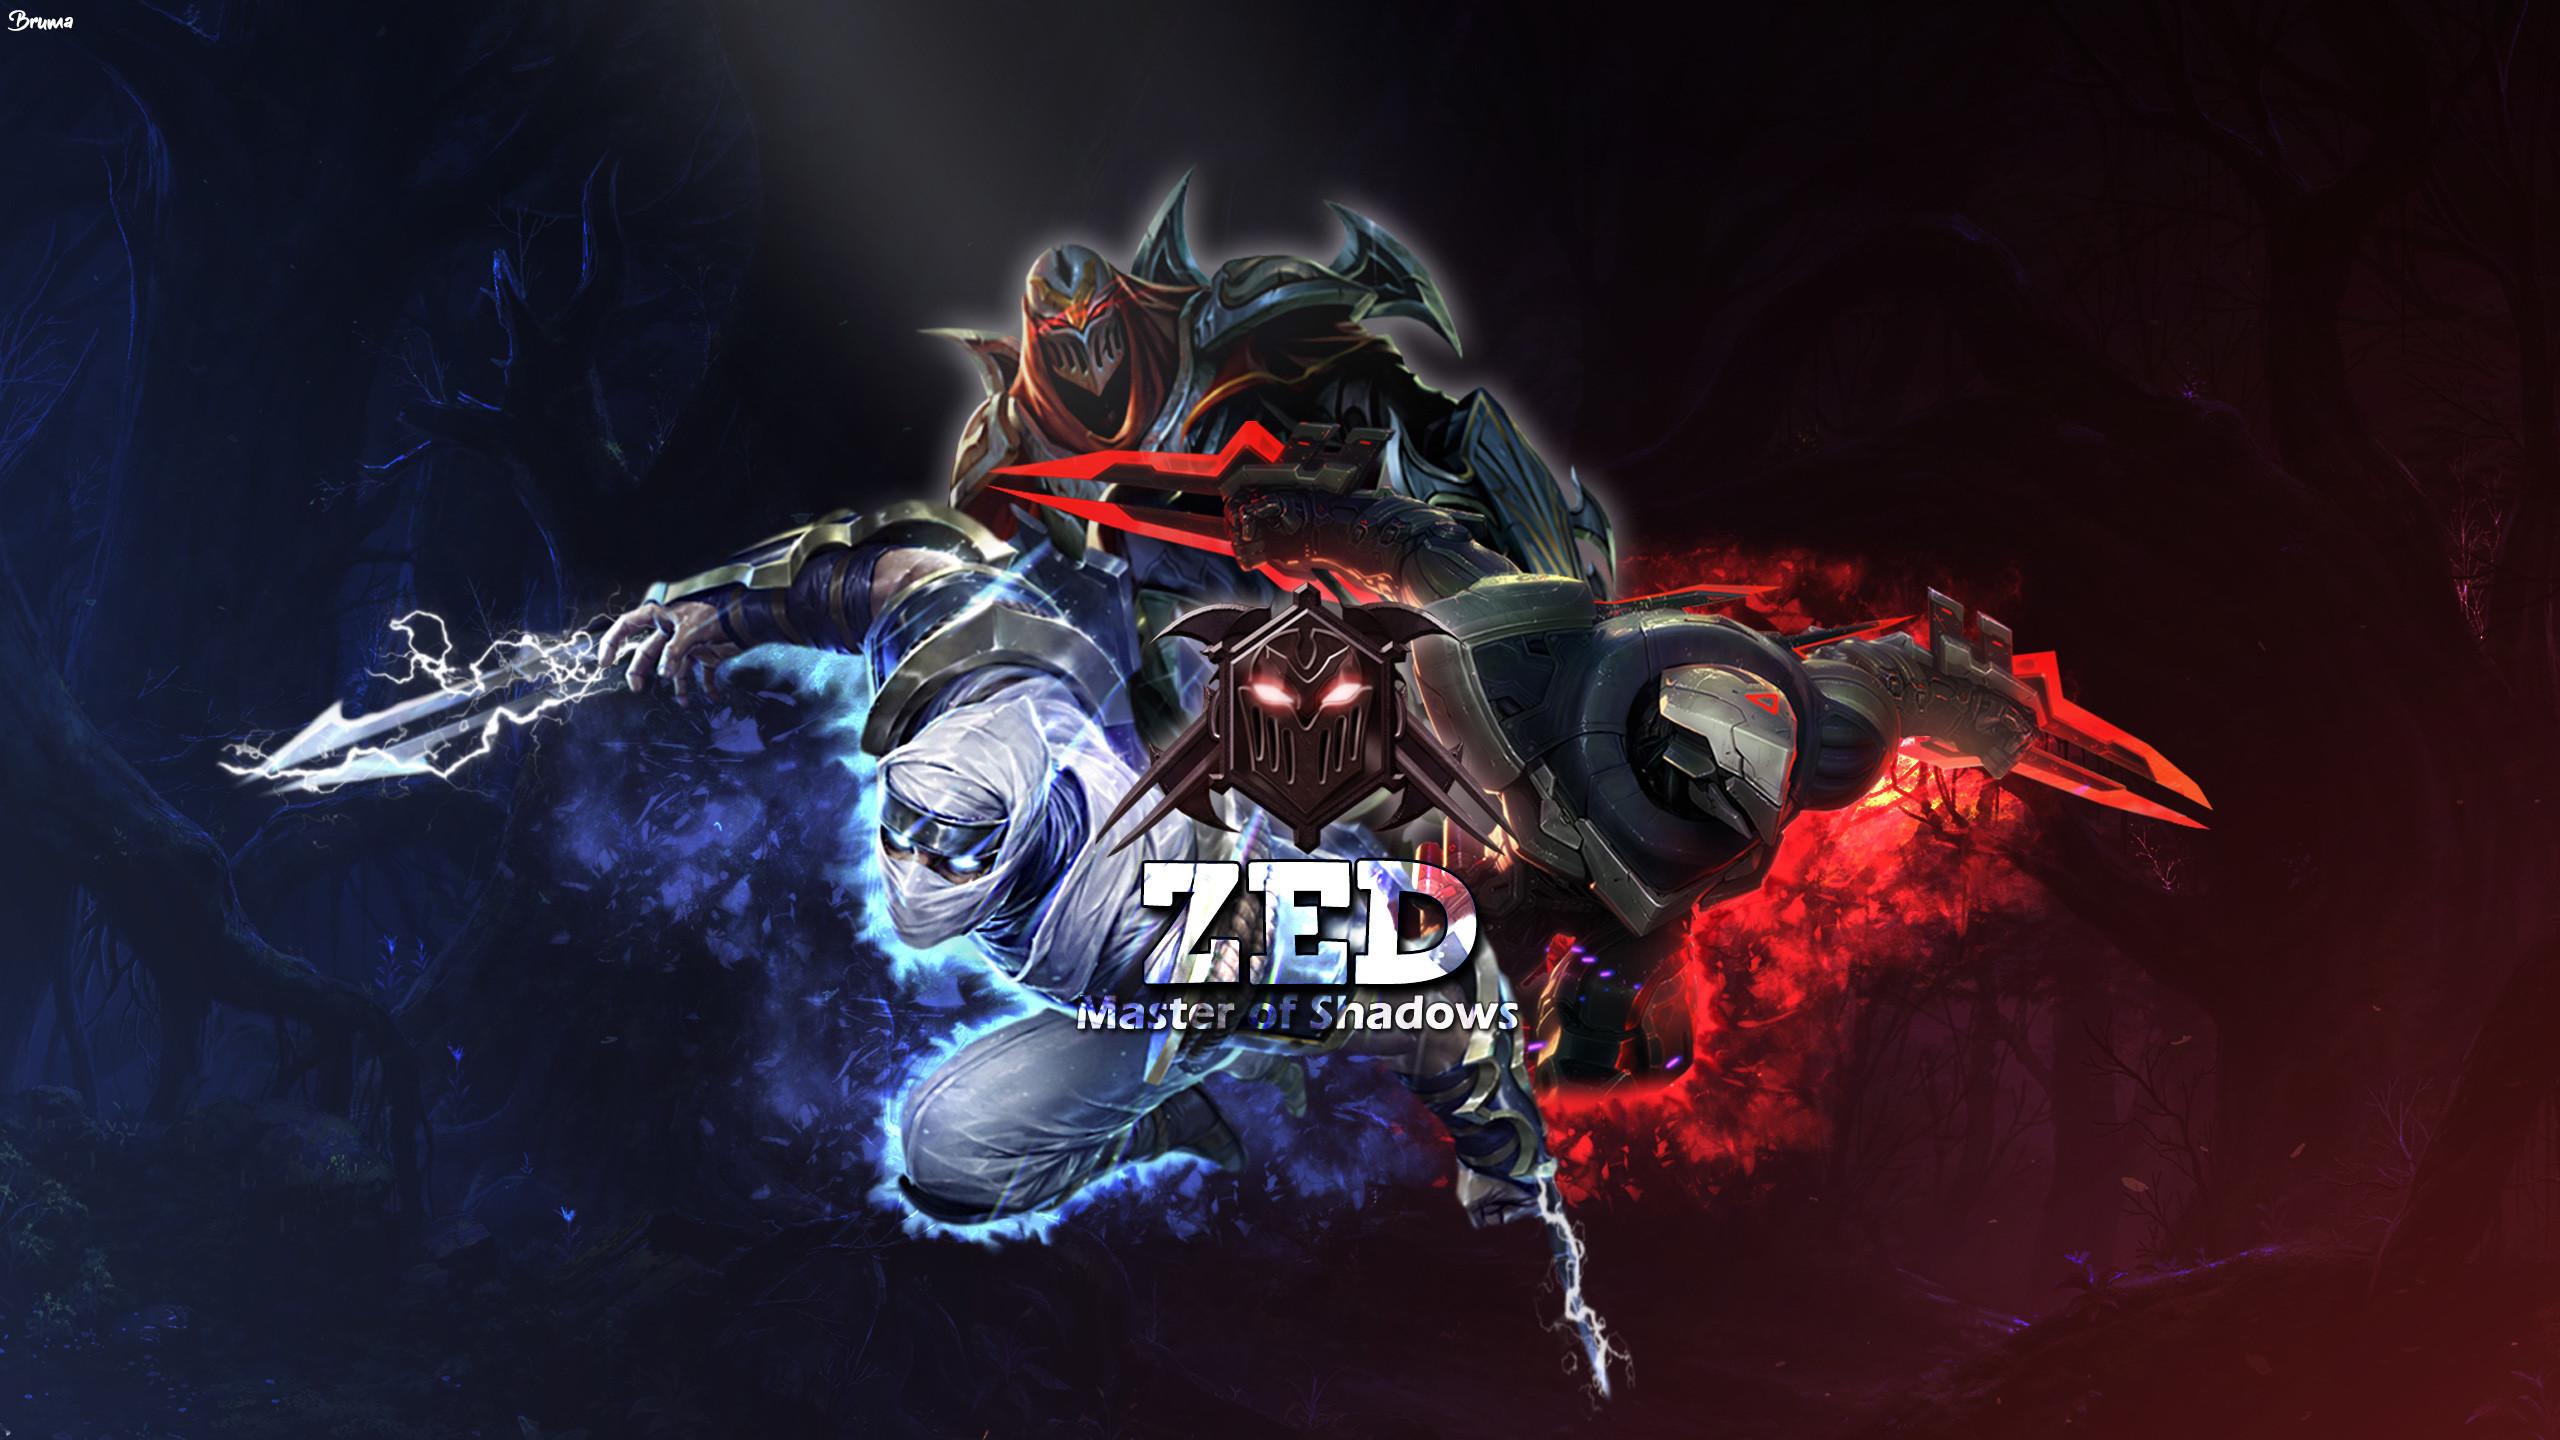 … zed lol wallpapers hd wallpapers artworks for league of legends …